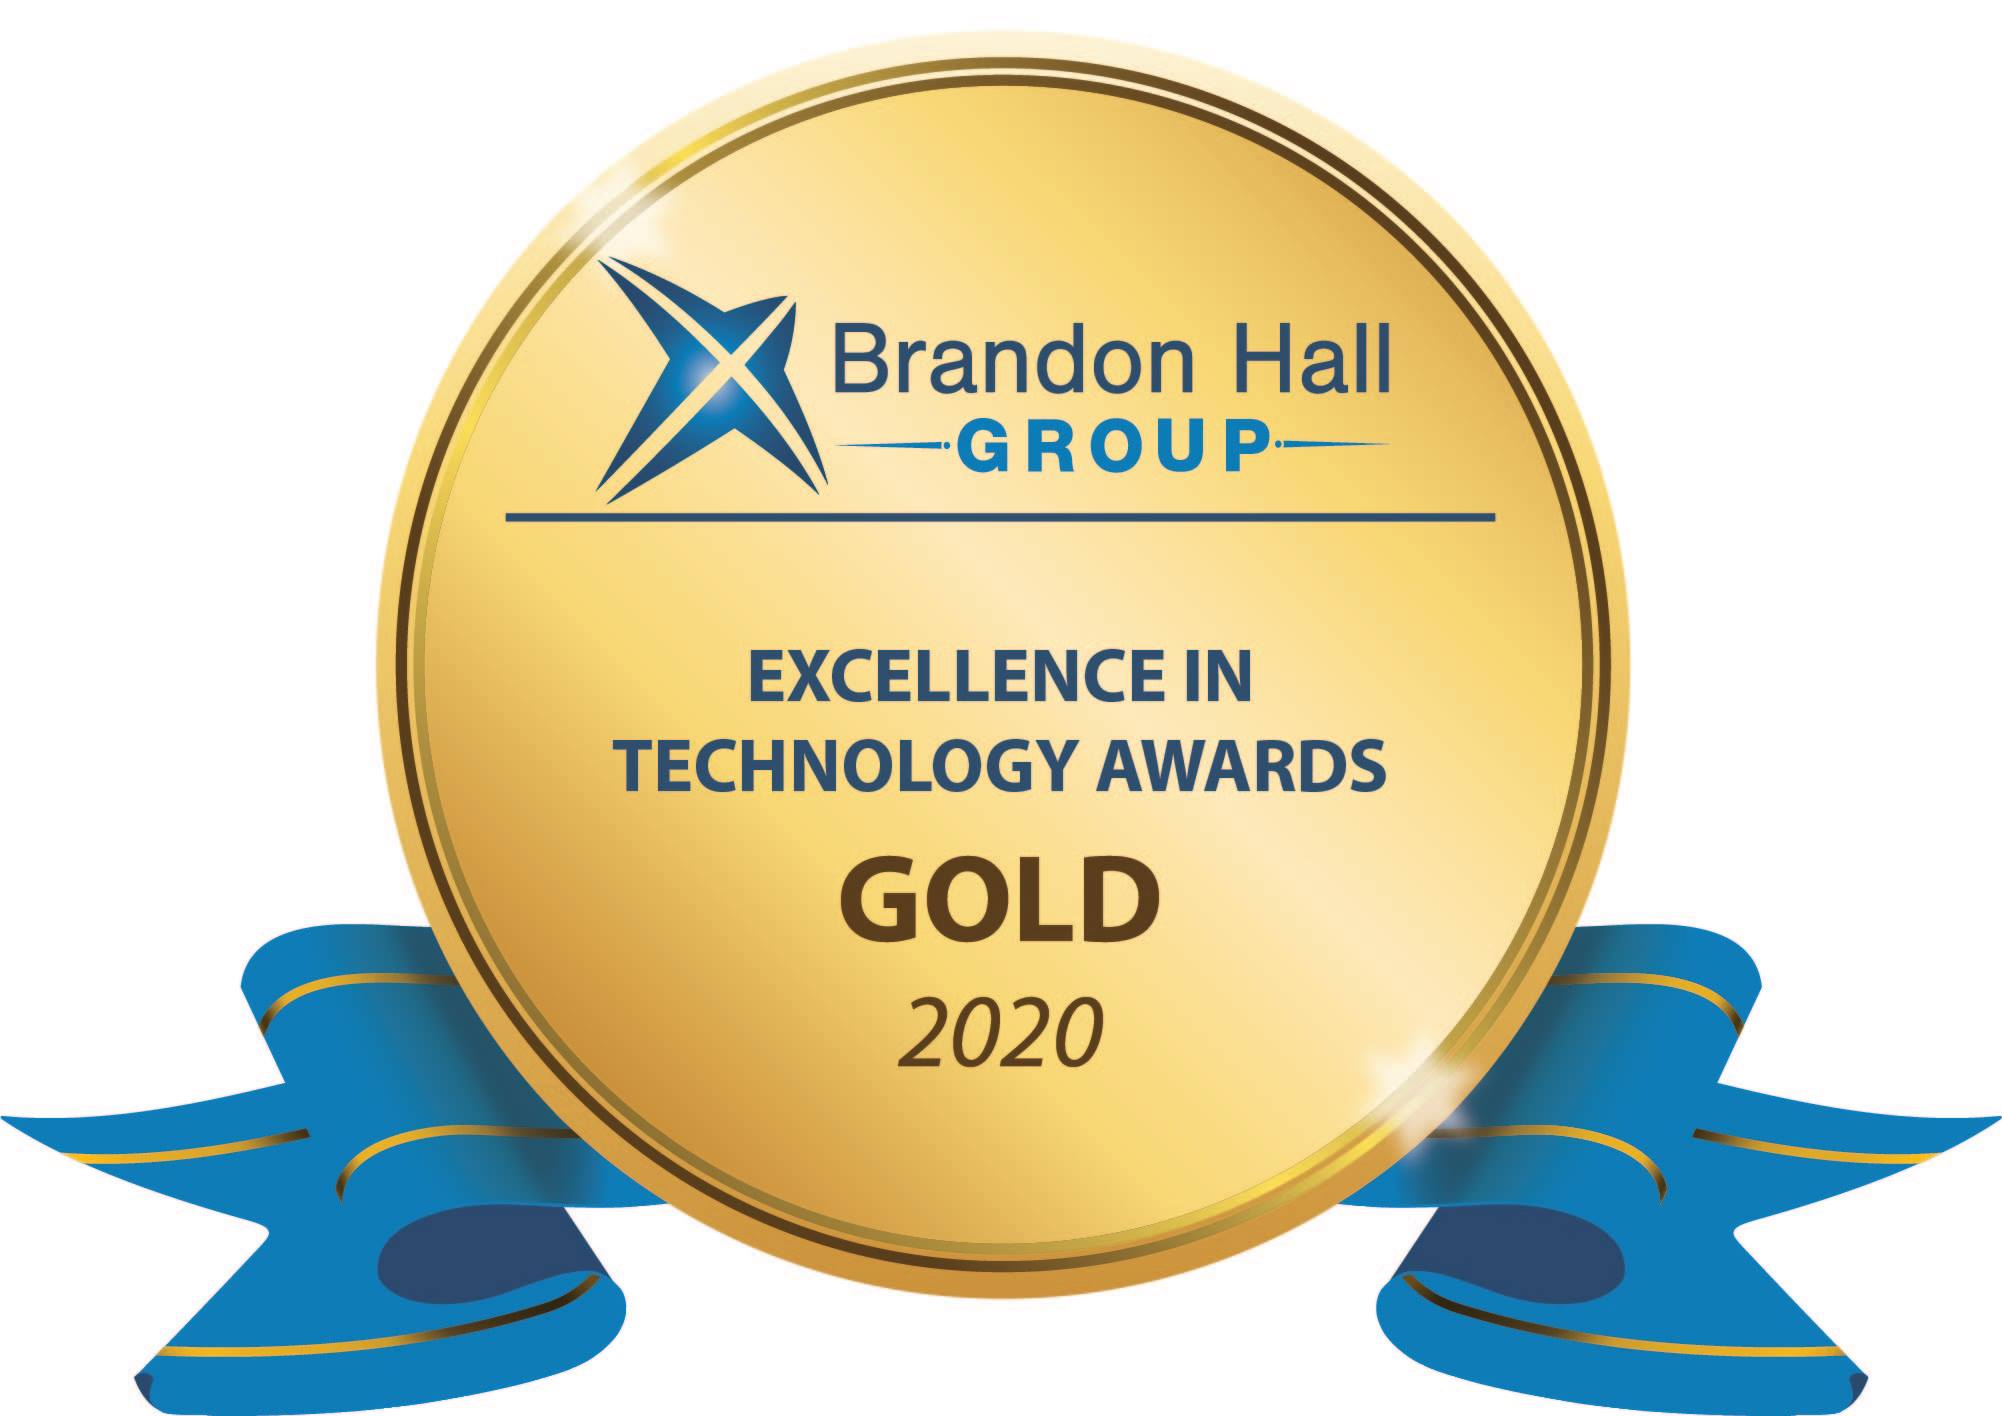 2020 Brandon Hall Gold award